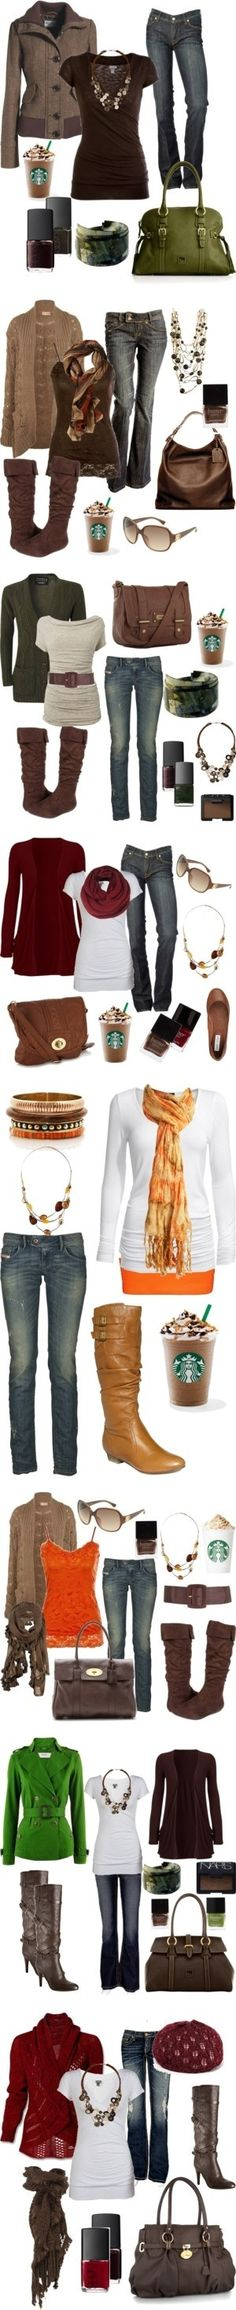 Fall outfits from polyvore by LindaGilbert22